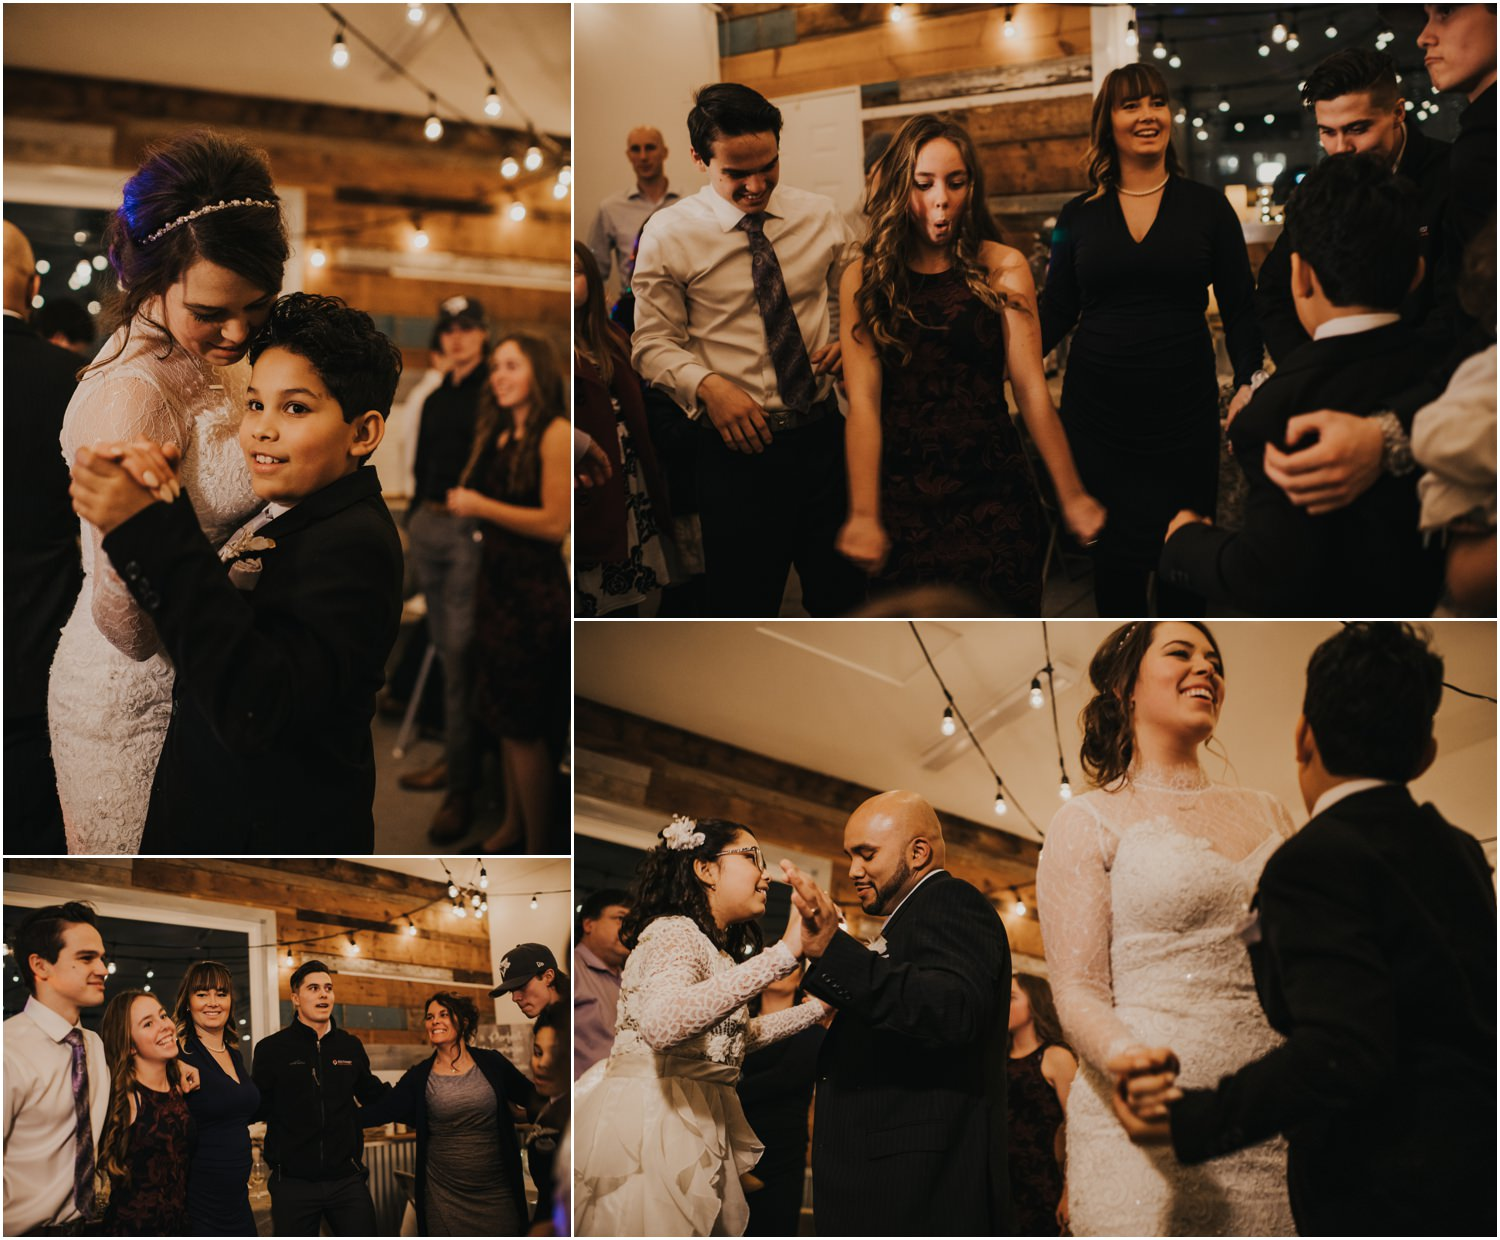 Kelowna Winter Wedding - Joelsview Photography_0147